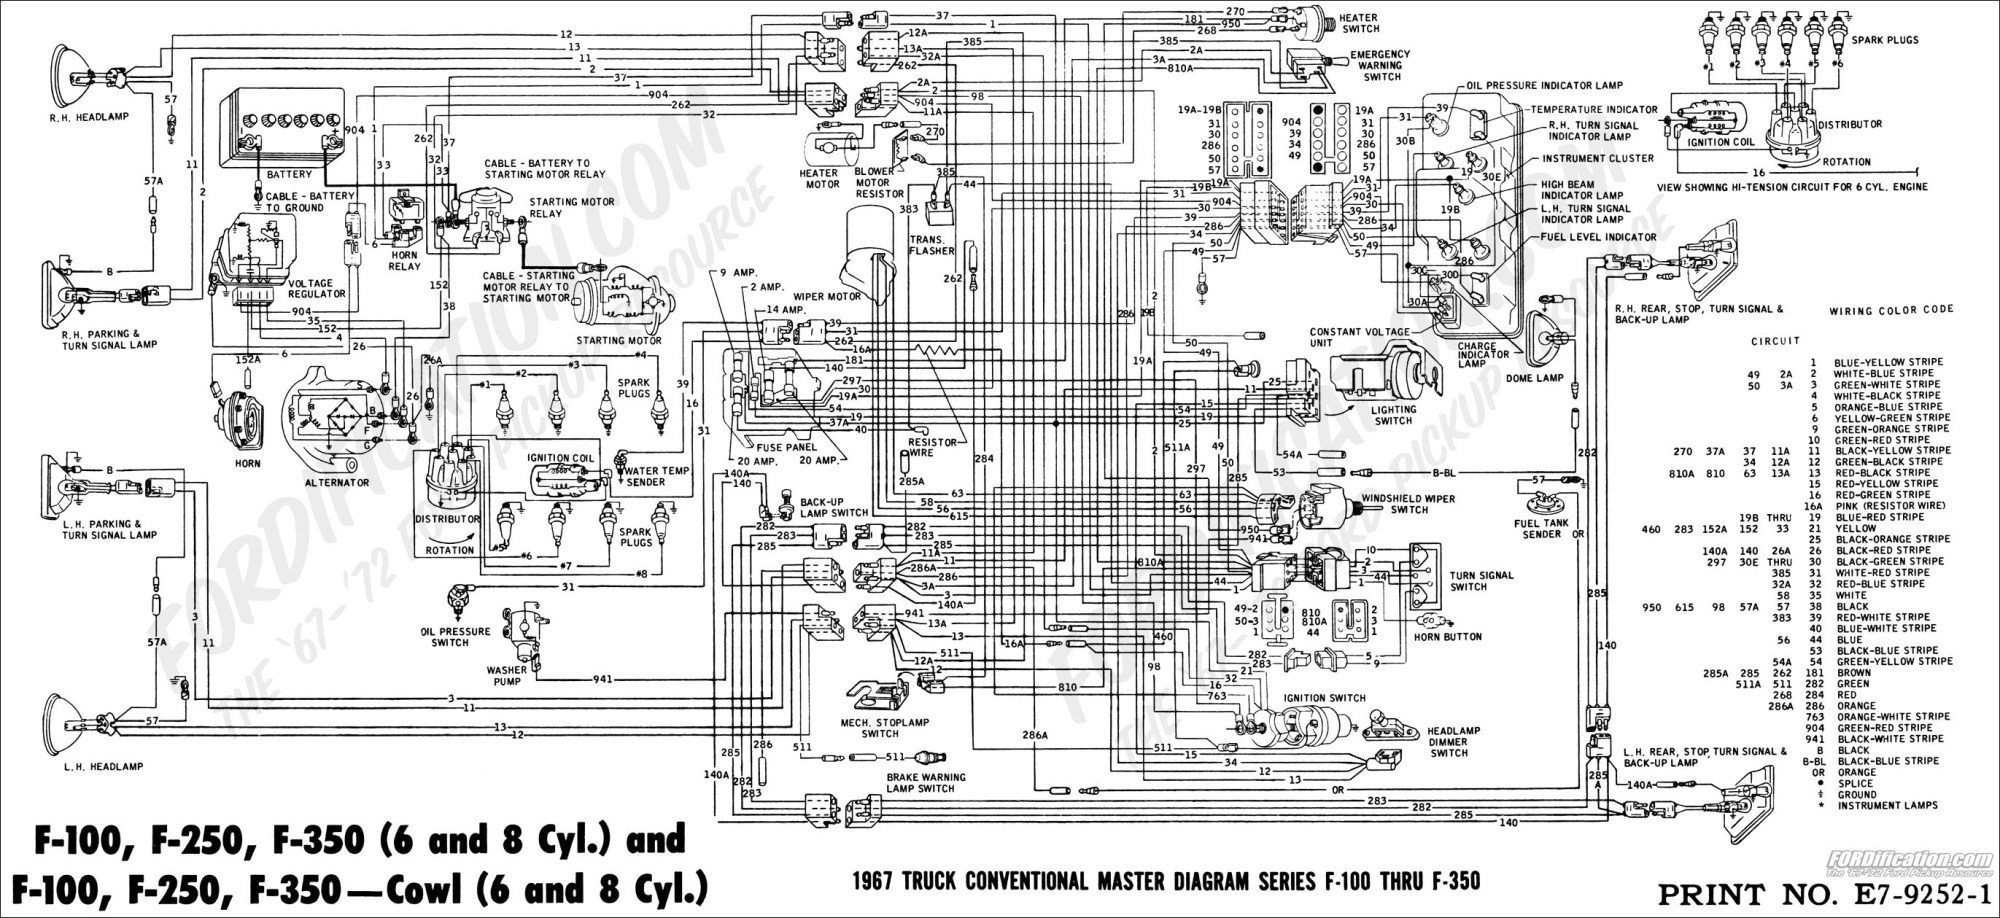 hight resolution of 89 f150 wiring diagram wiring diagram sheet mix 89 ford f 150 wiring diagrams wiring diagram 7 3